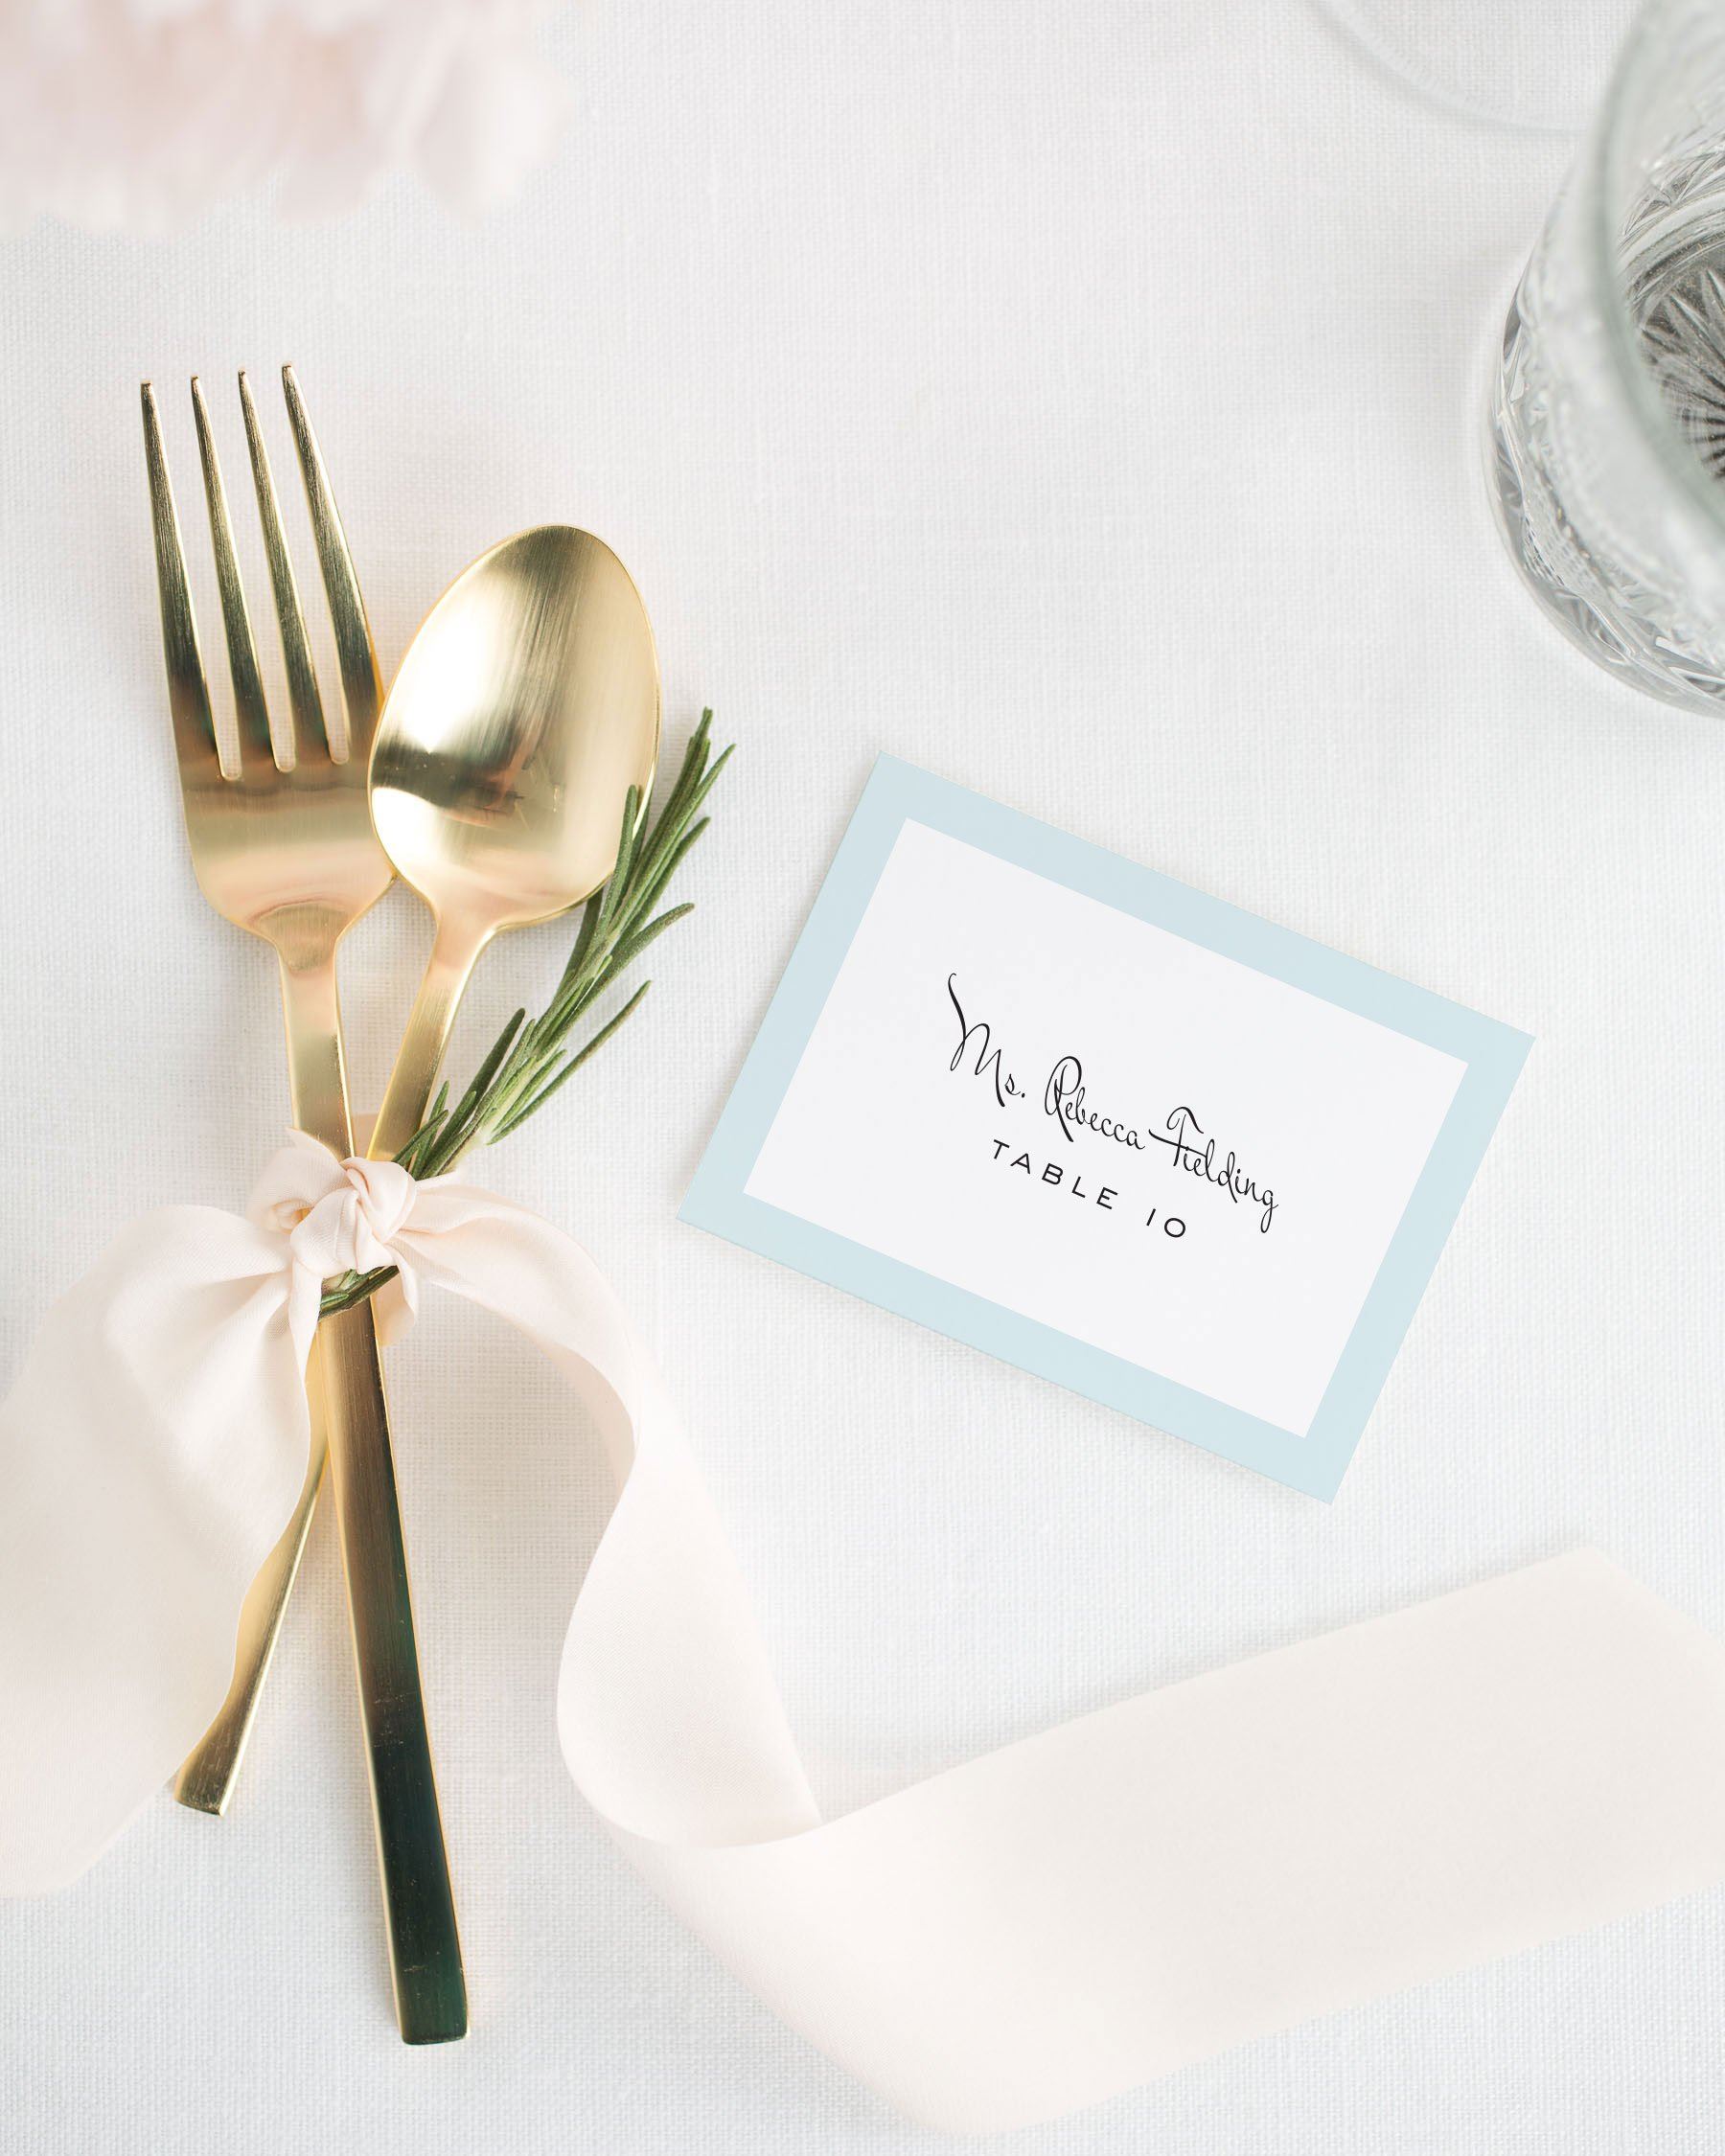 Modern Luxe Place Cards - Place Cards by Shine